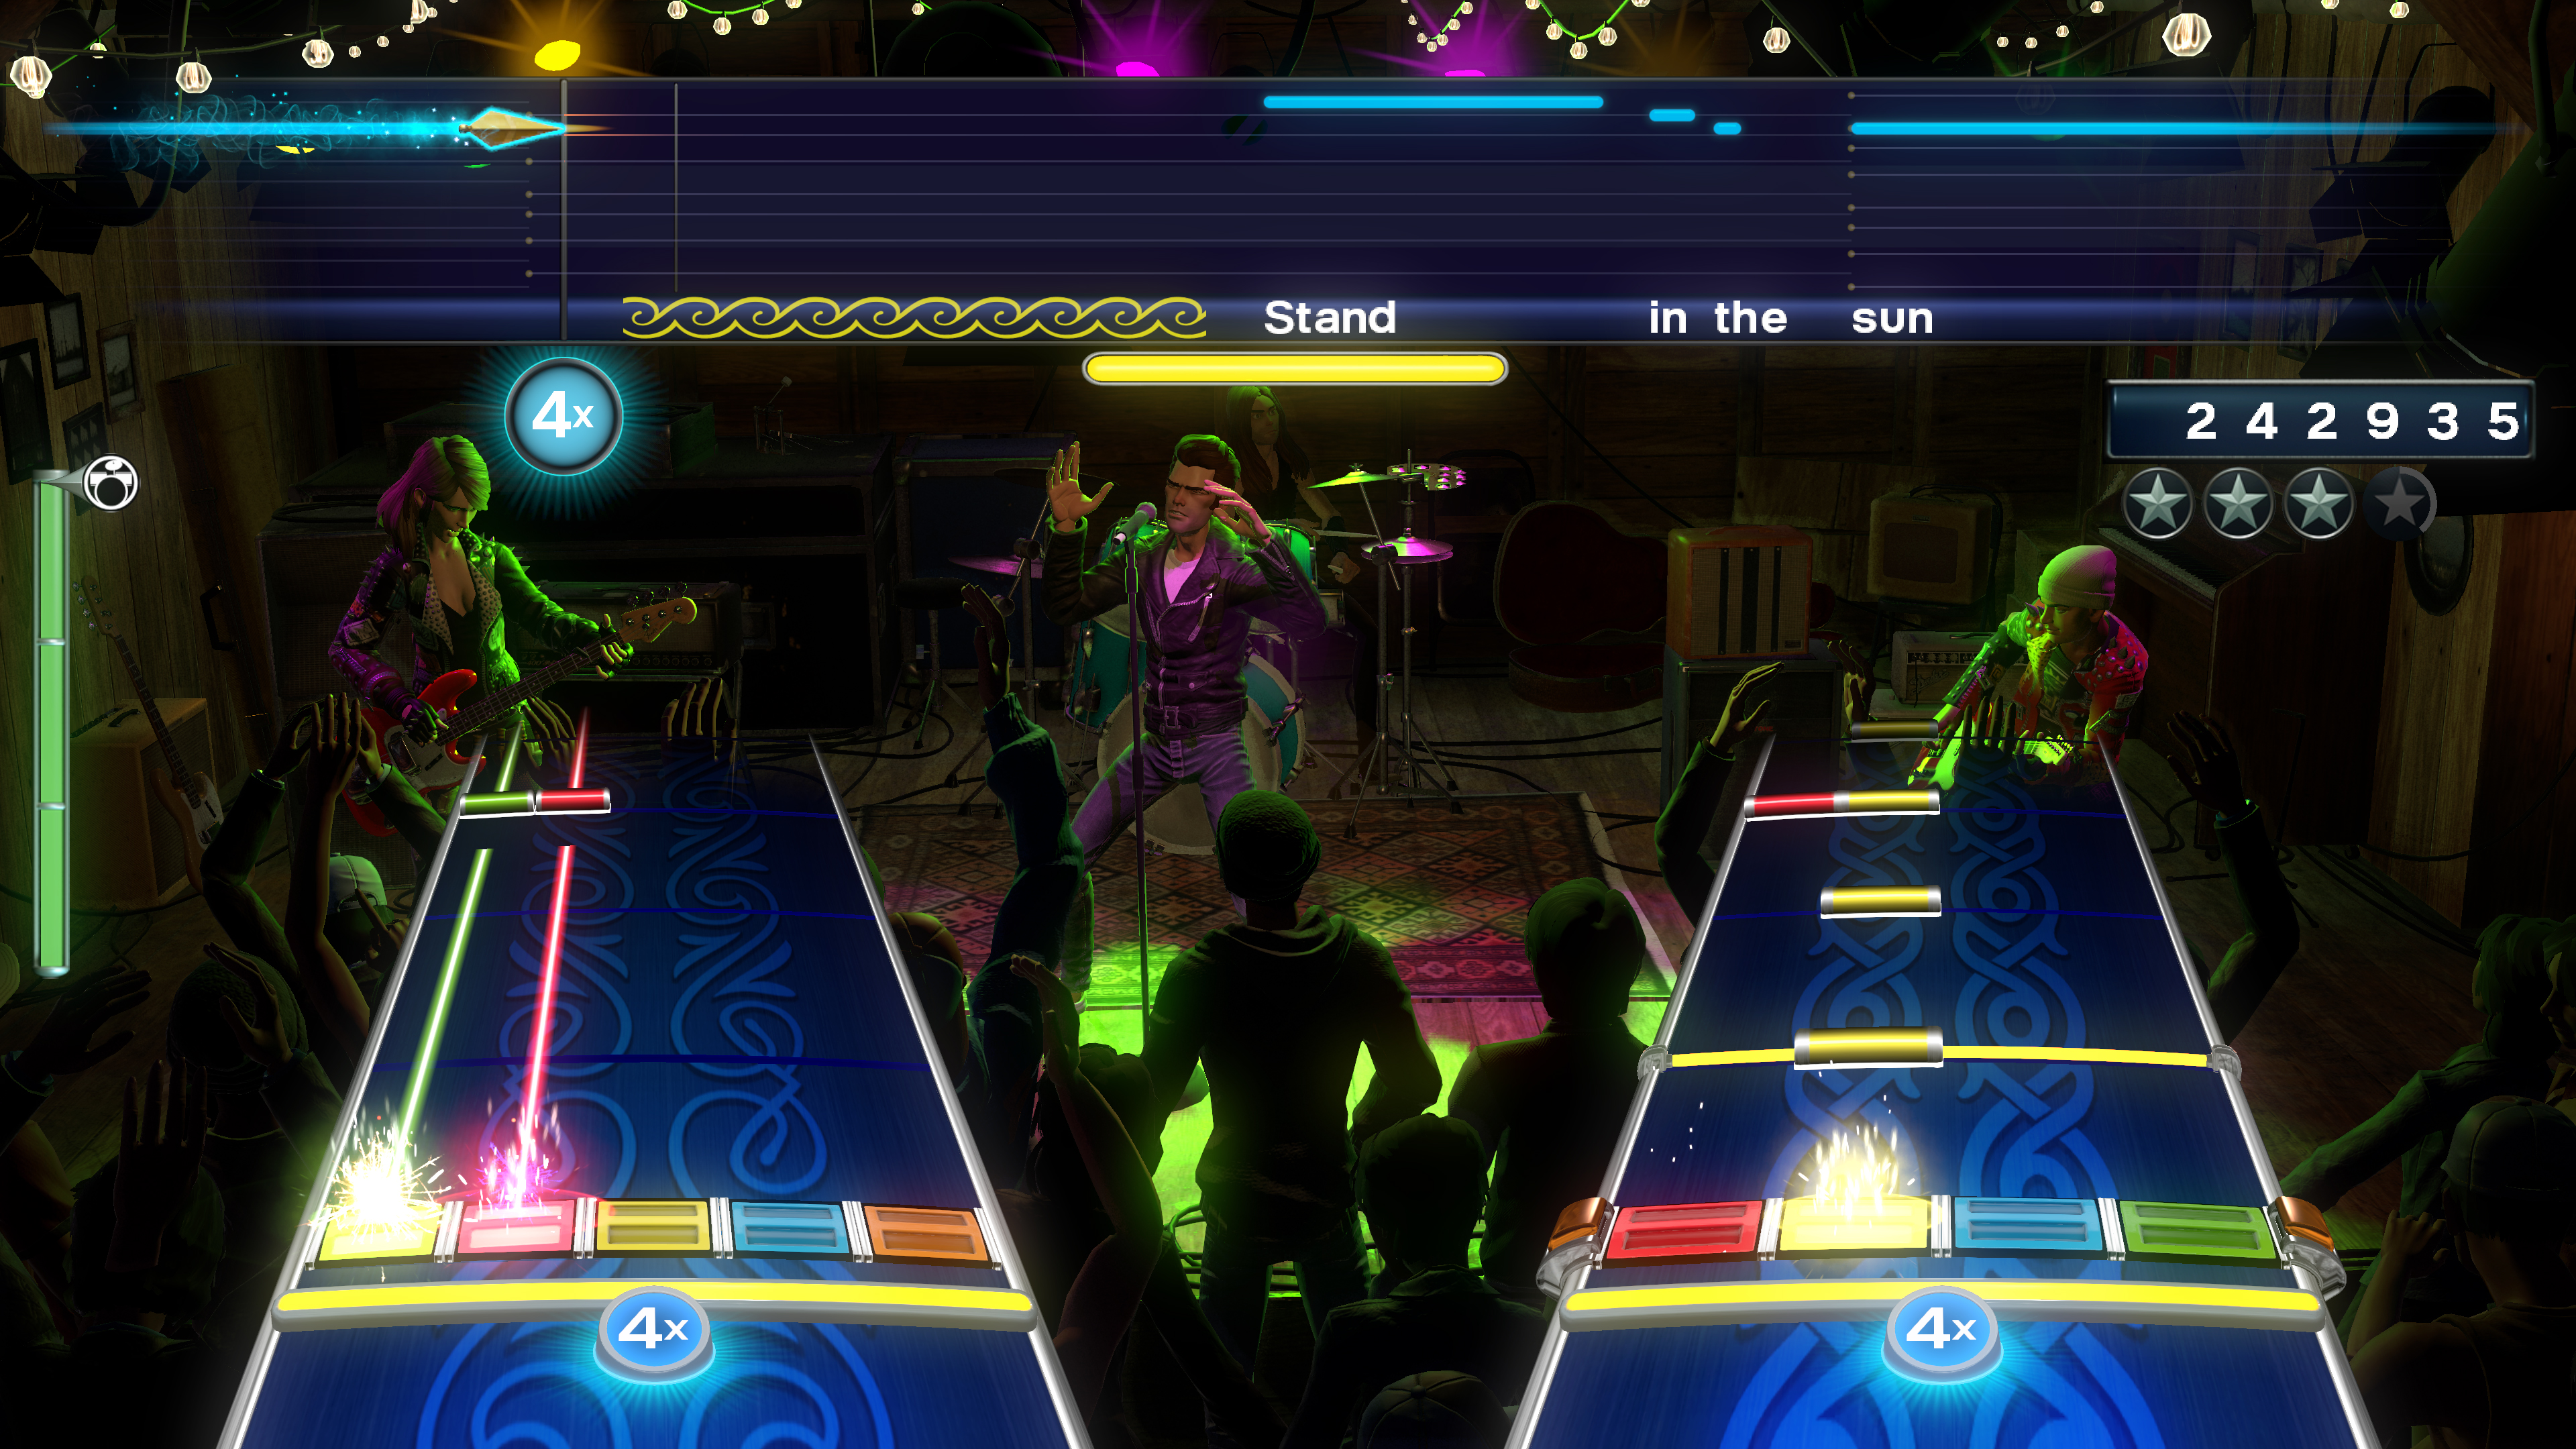 A screenshot from the new Rock Band 4!